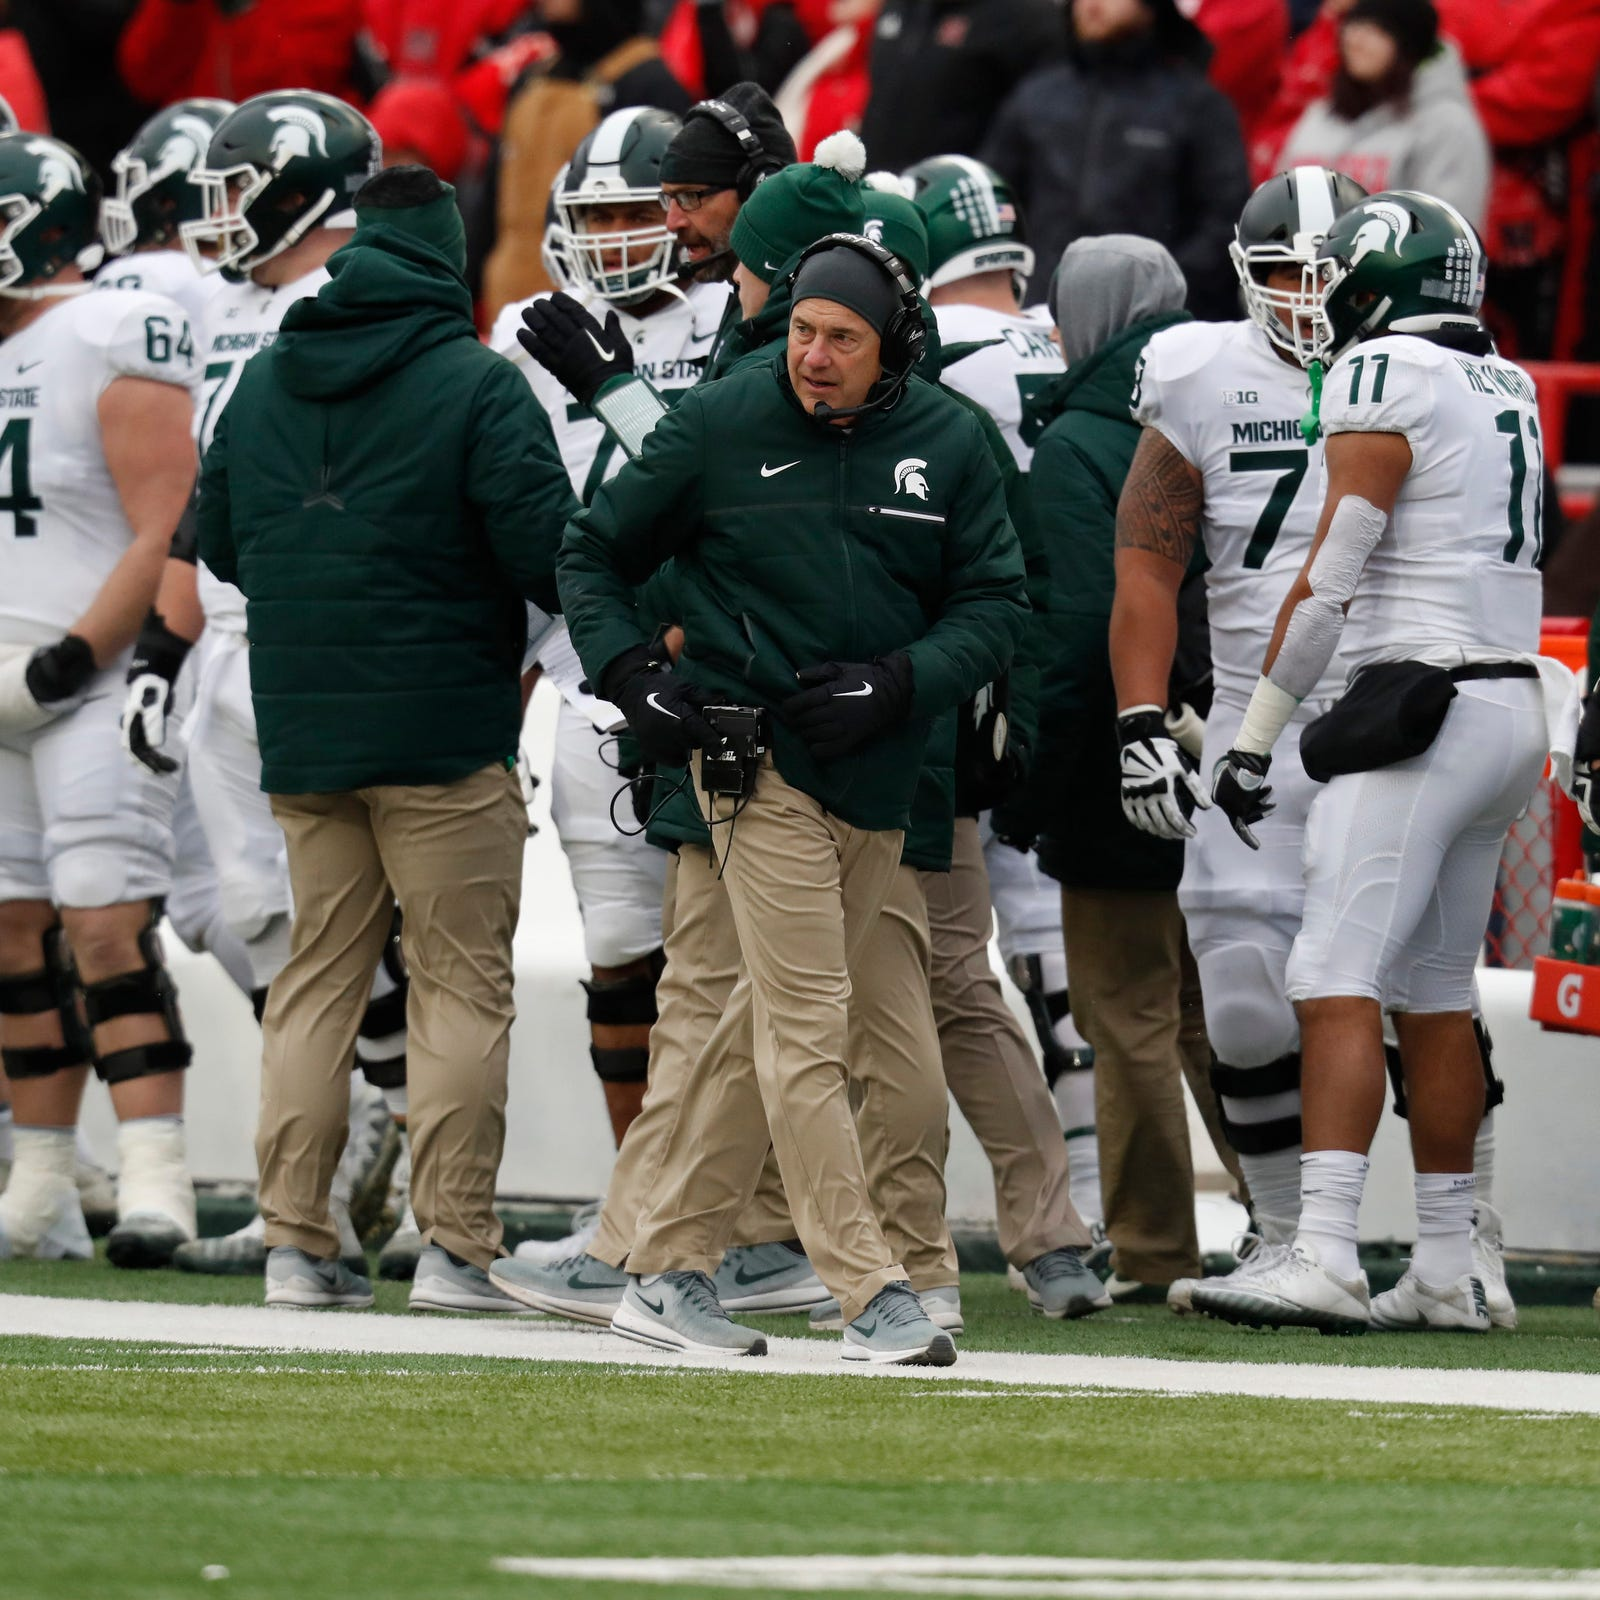 Mark Dantonio making calls on offense now, has tougher decisions ahead